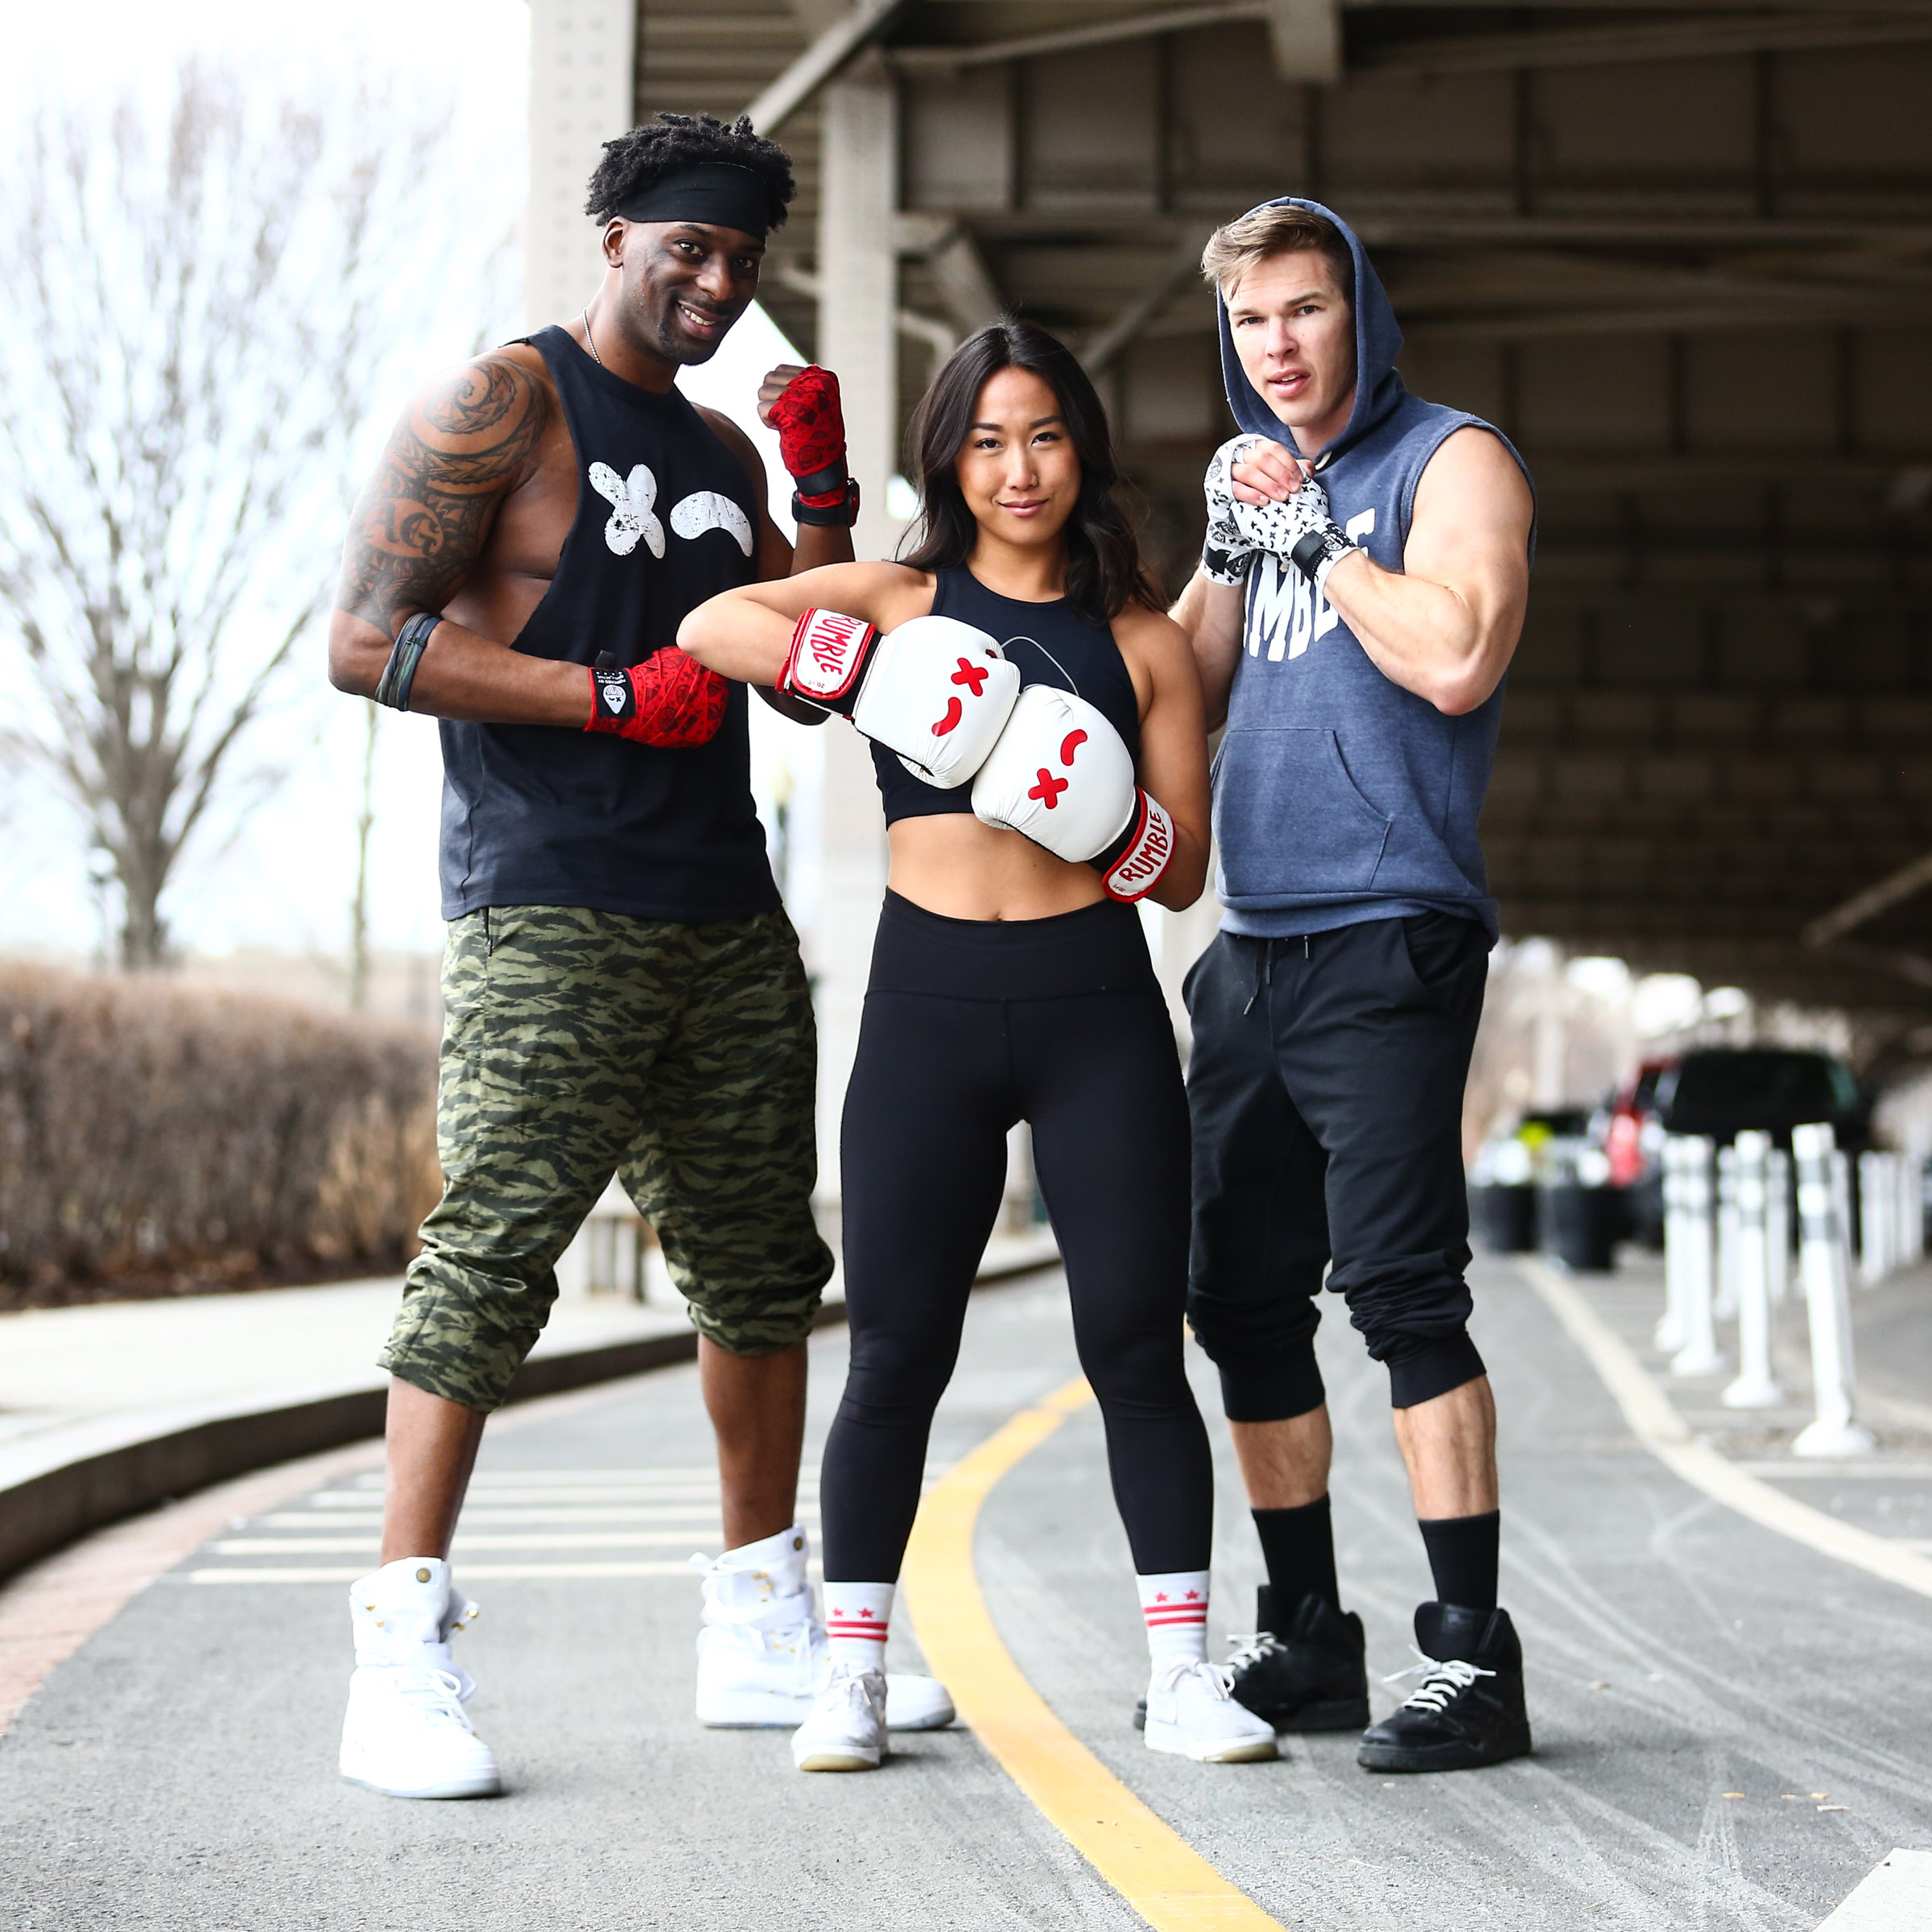 D.C. instructors Arnie Gaither, Sharon Kim and Joshua Rasch. (Image: Trapp Photos/ Courtesy Rumble)